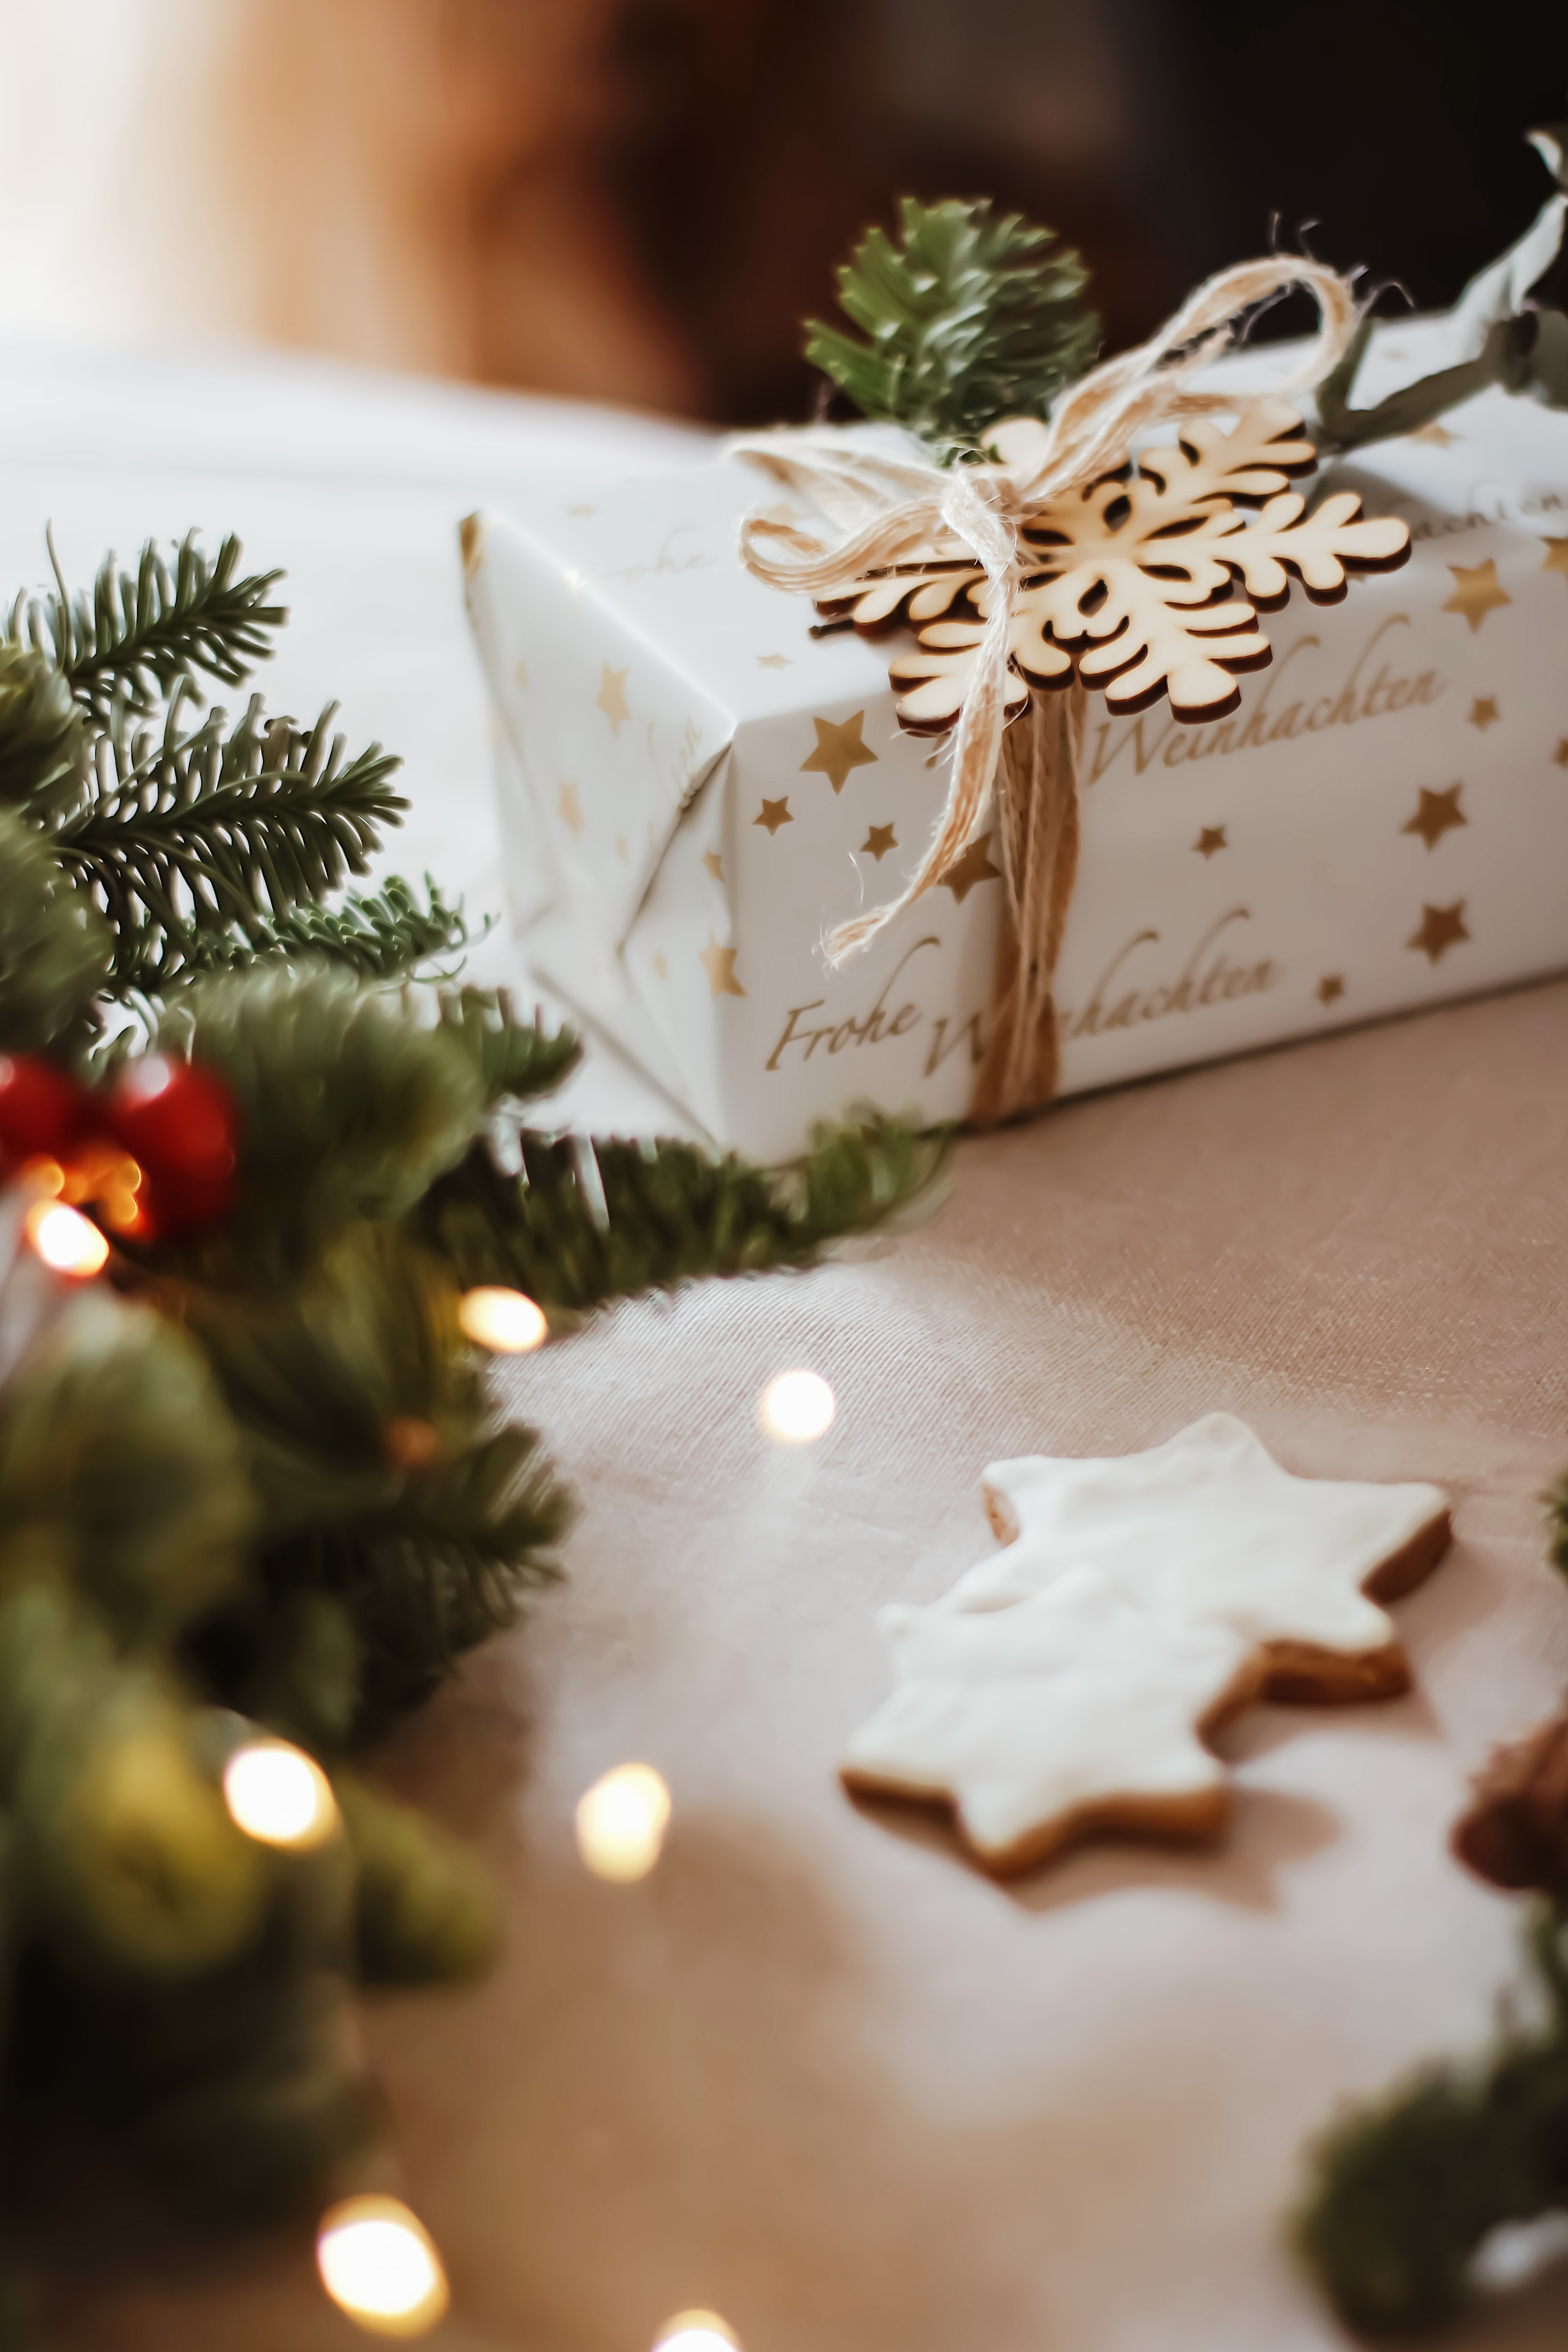 155108 download wallpaper Holidays, Present, Gift, Box, Holiday, Christmas, New Year screensavers and pictures for free